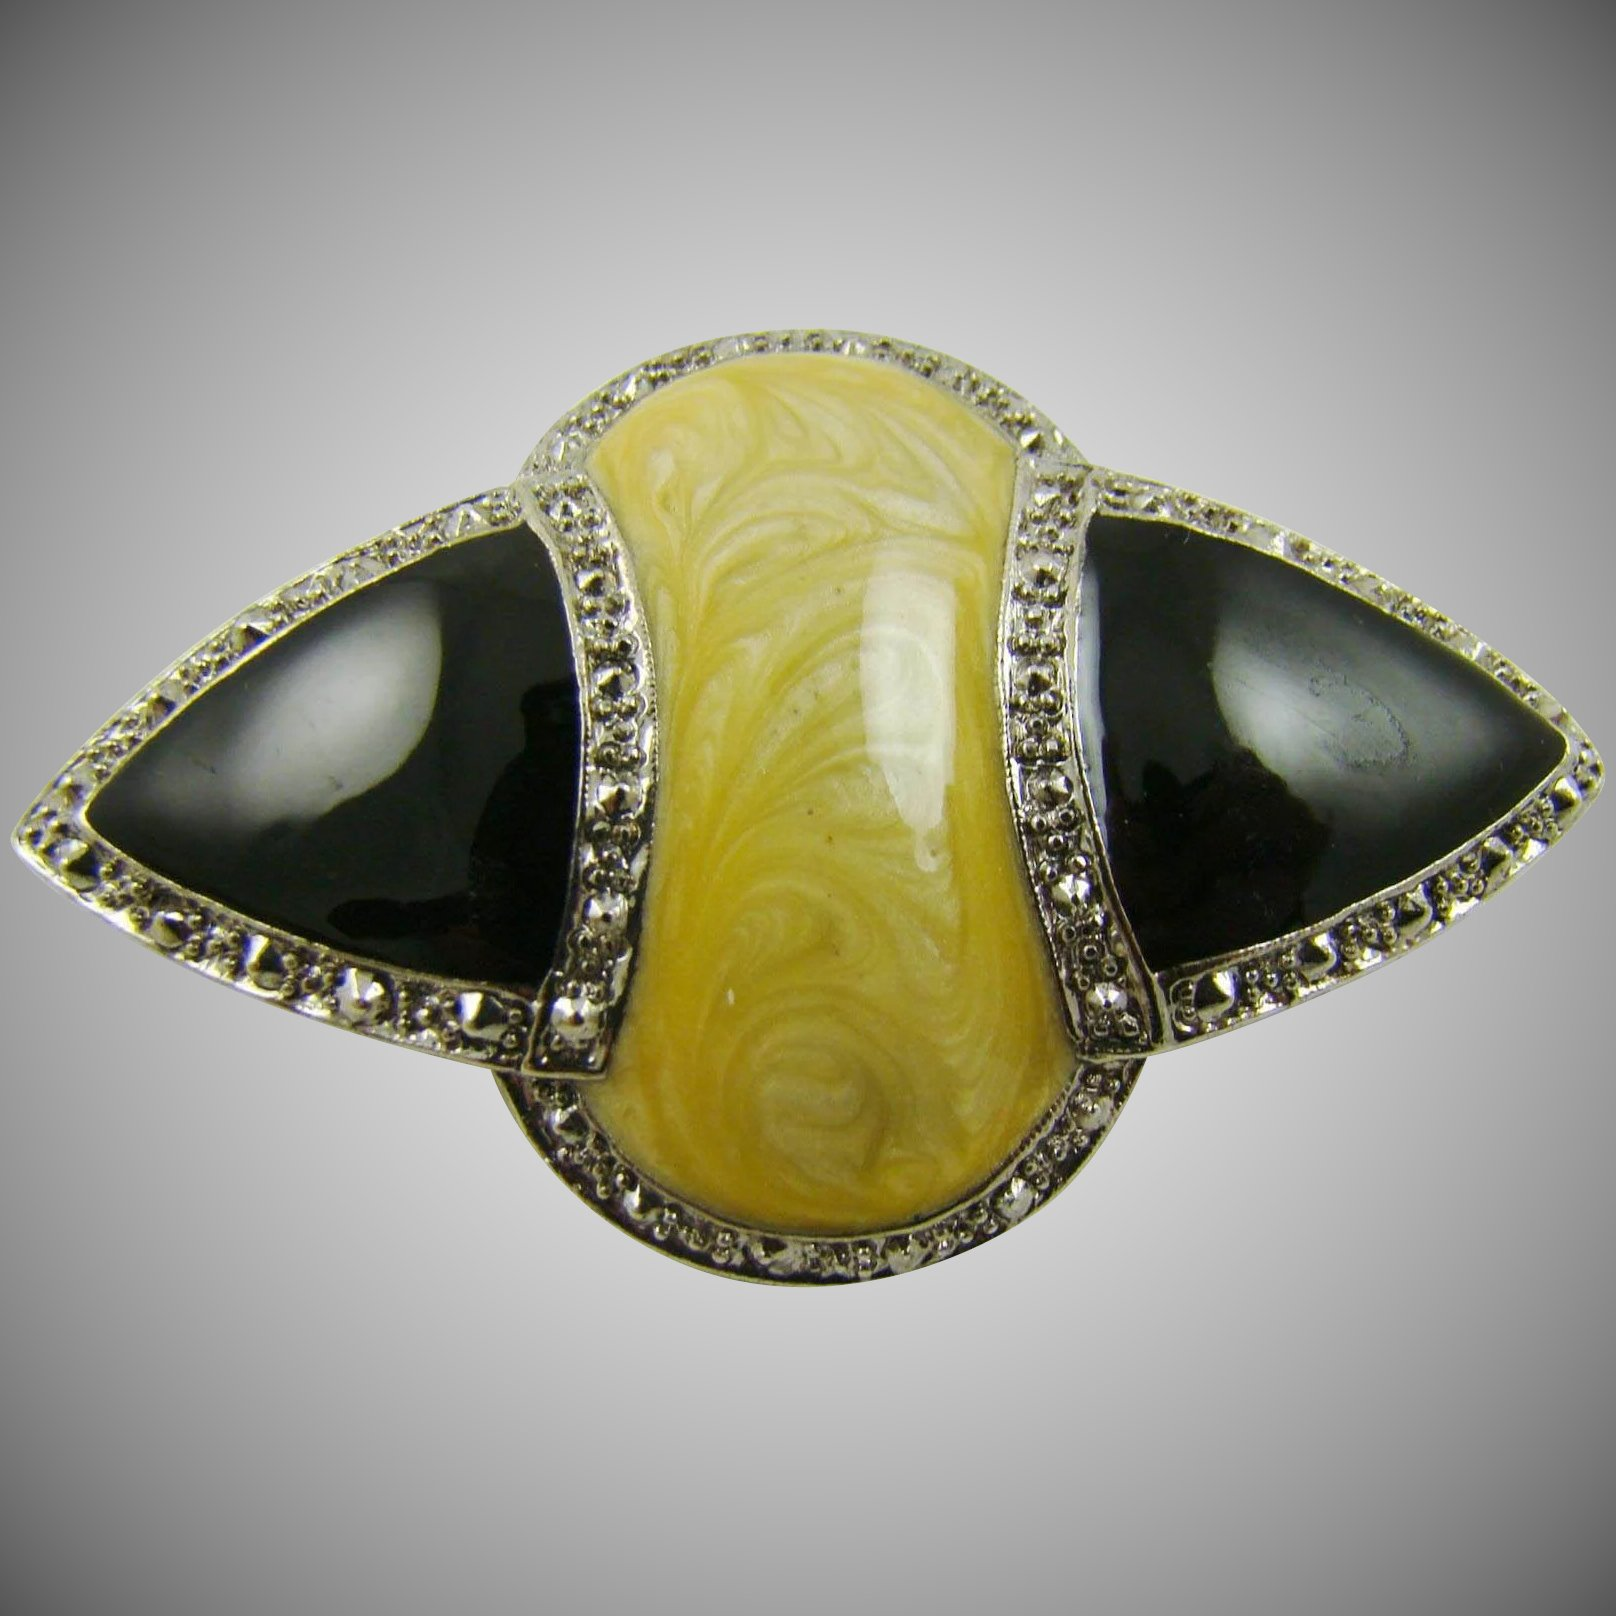 Art deco style brooch with cream and black enamel for Deco veranda